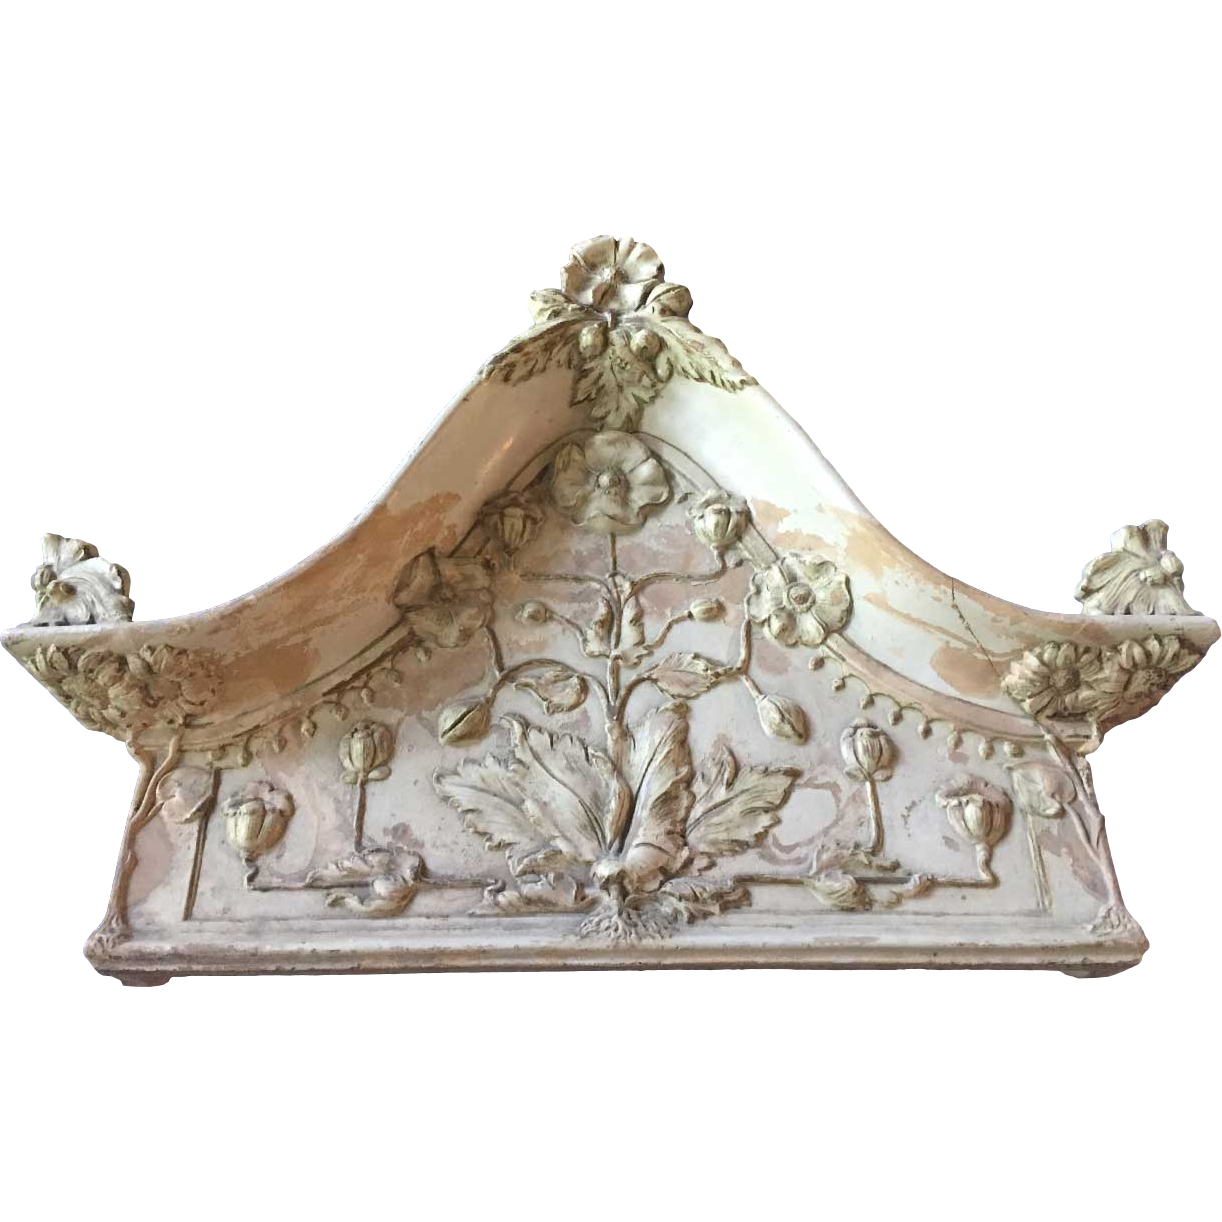 Pair of Swedish H. Ehlers & Co. Architectural Terracotta Pediments